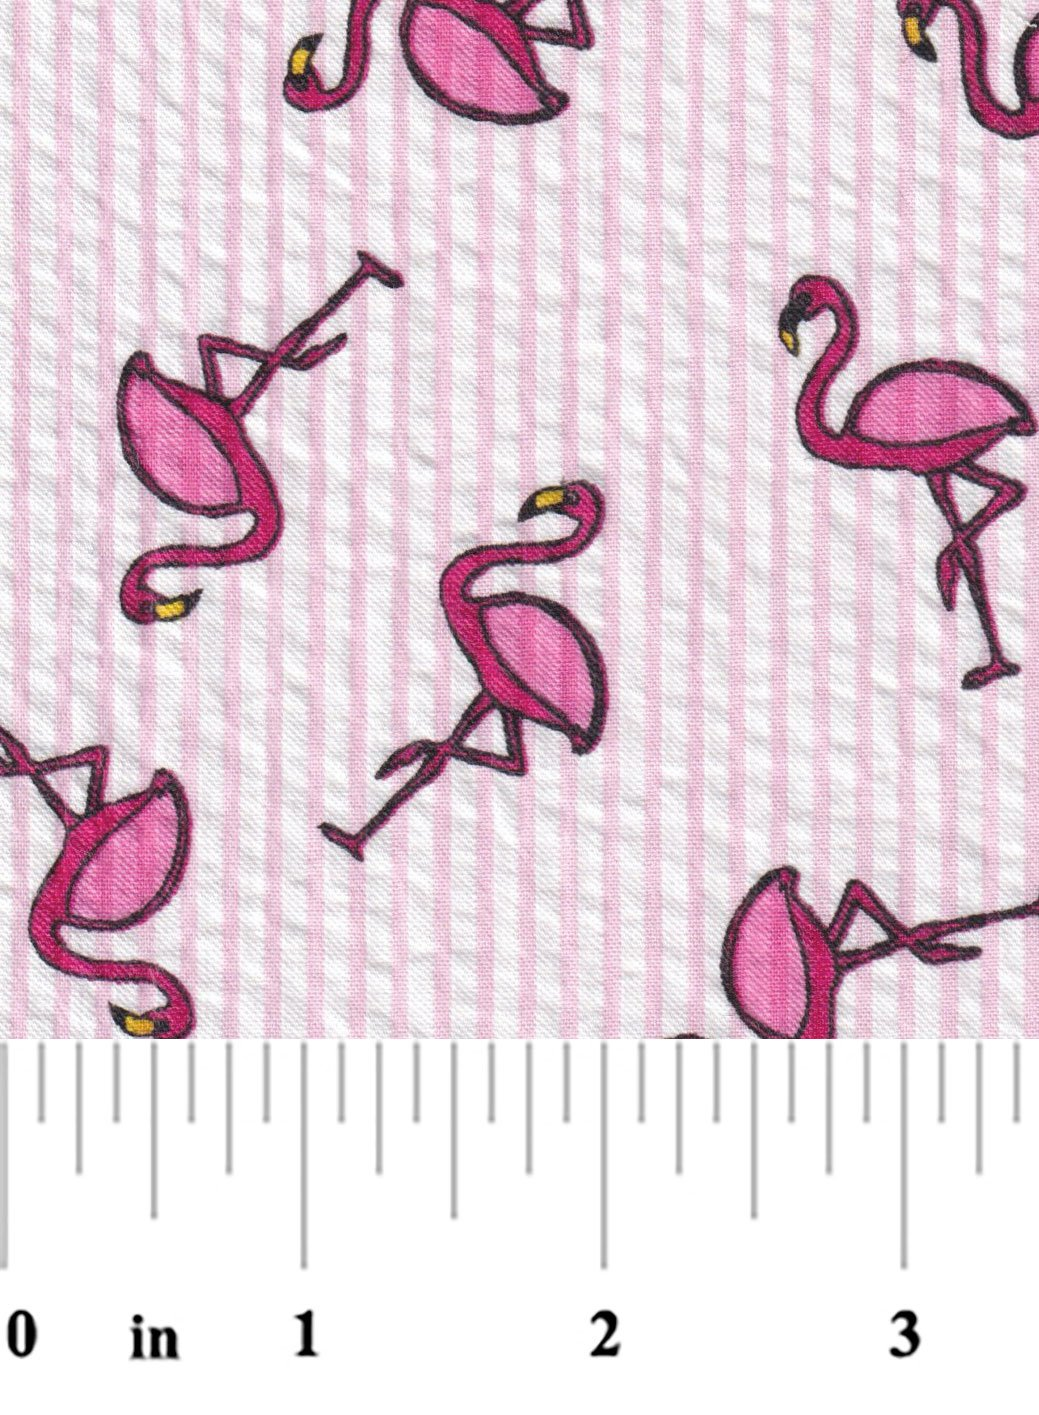 *SEERSUCKER-FLAMINGO//HOT PINK FLAMINGOS PRINTED ON PINK STRIPE//60 WIDE//FABRIC FINDERS